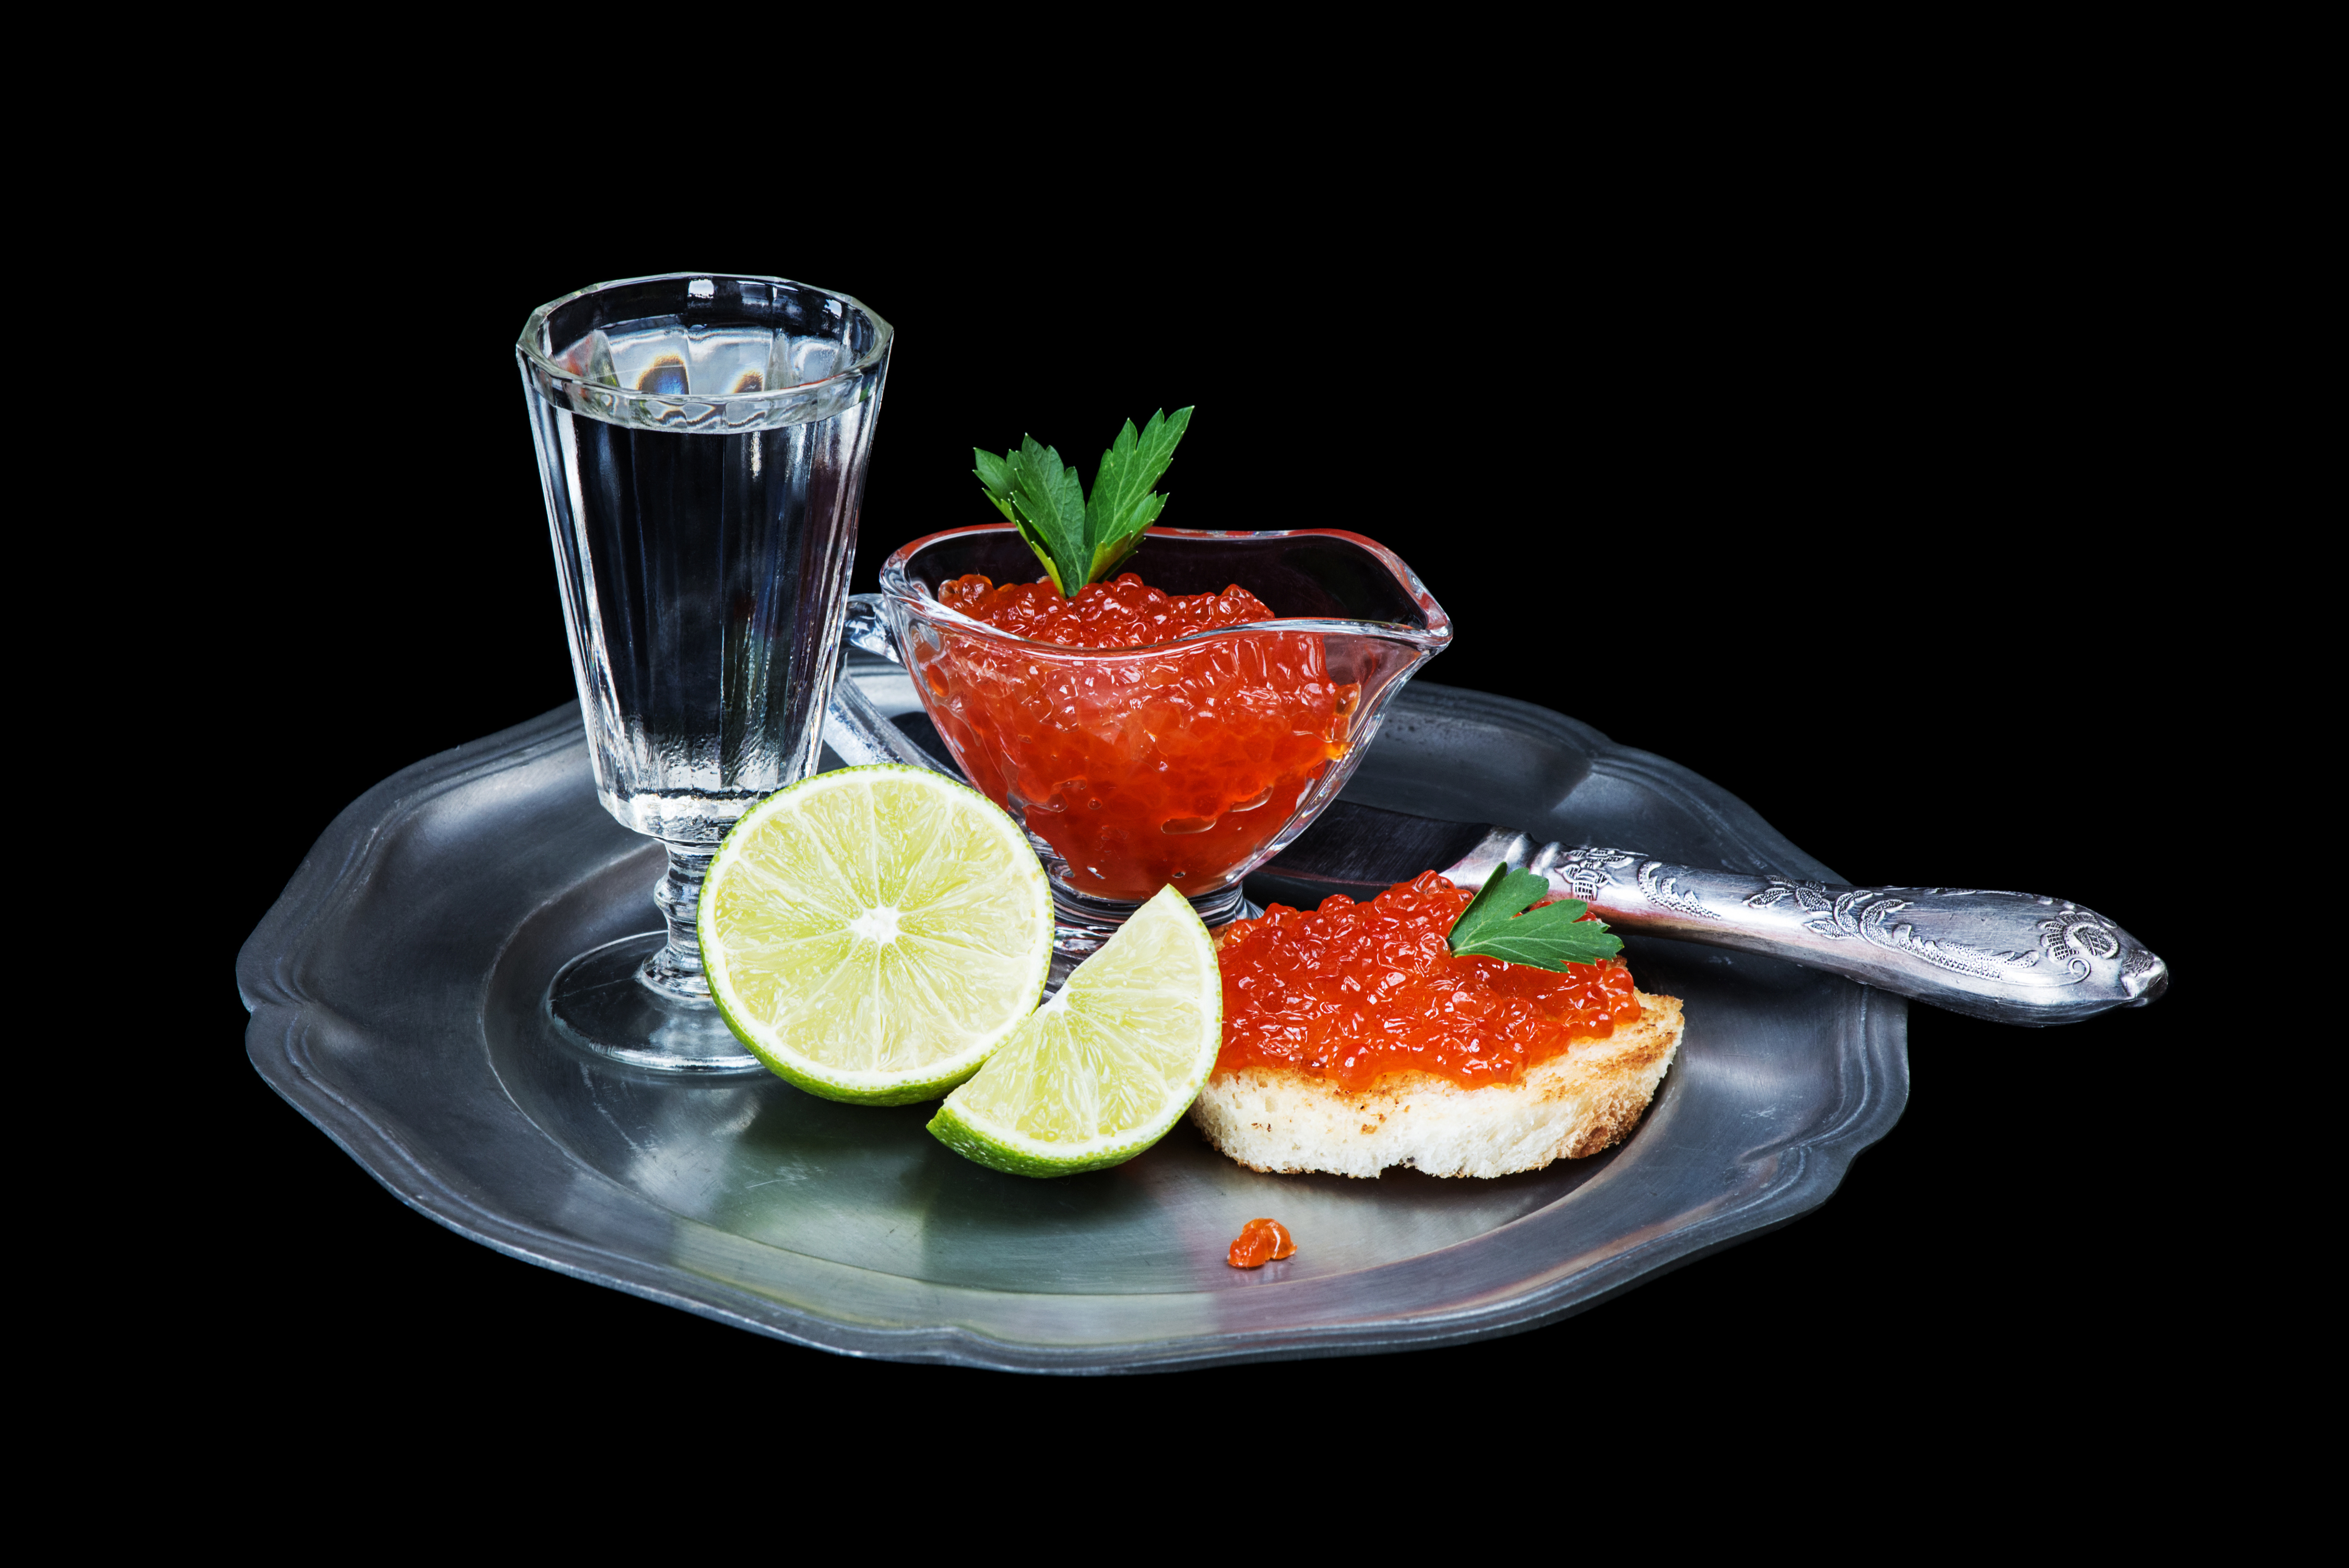 2019Food_Sandwiches_with_red_caviar_on_a_tray_with_a_glass_of_vodka_and_lime_132536_.jpg